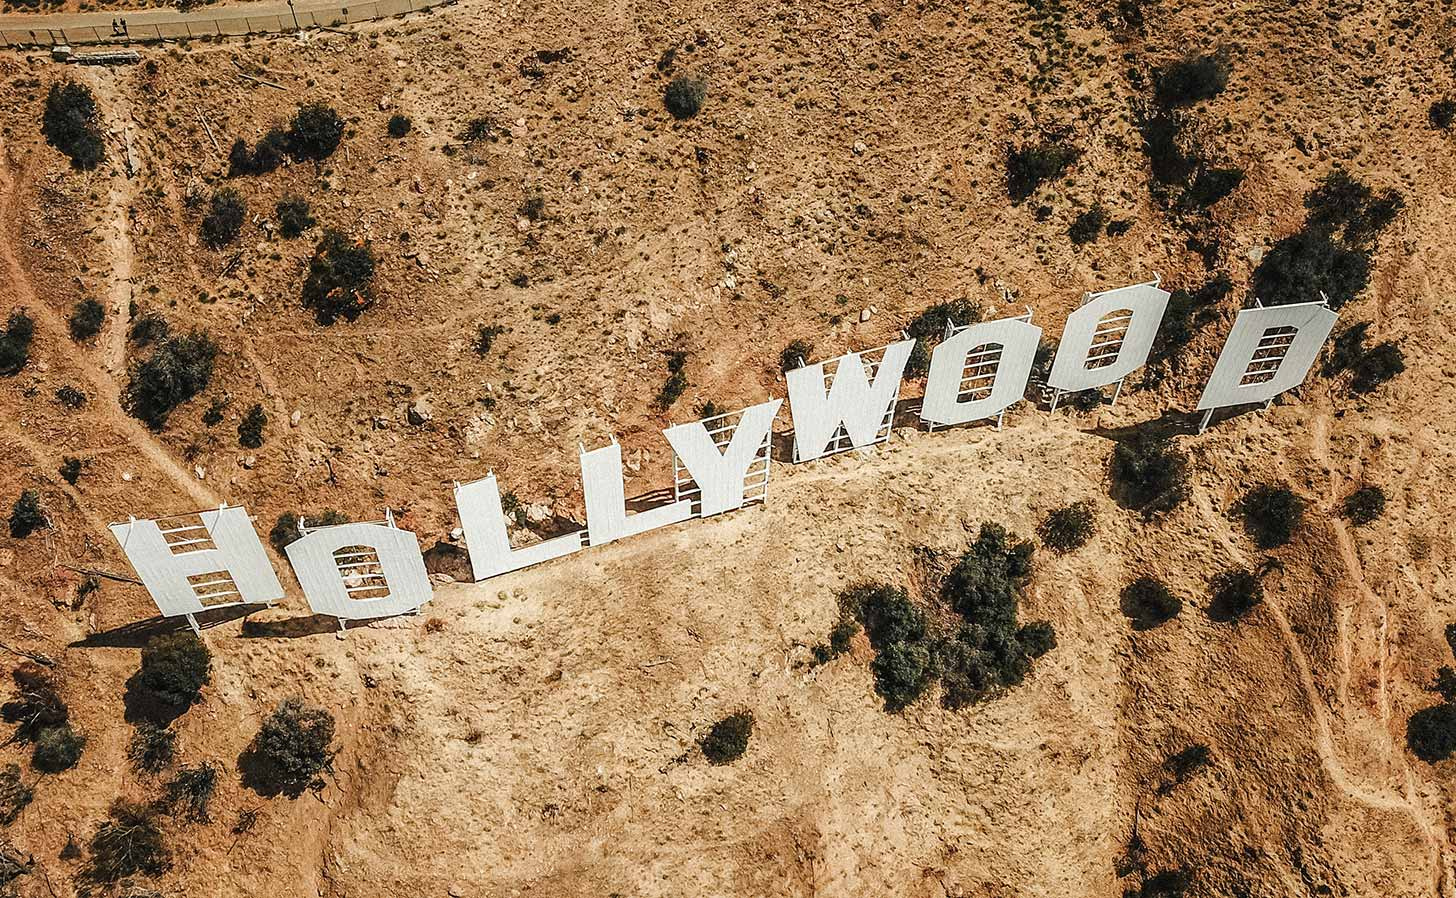 Hollywood-skylten i Los Angeles. Foto: Justin Aikin / Unsplash